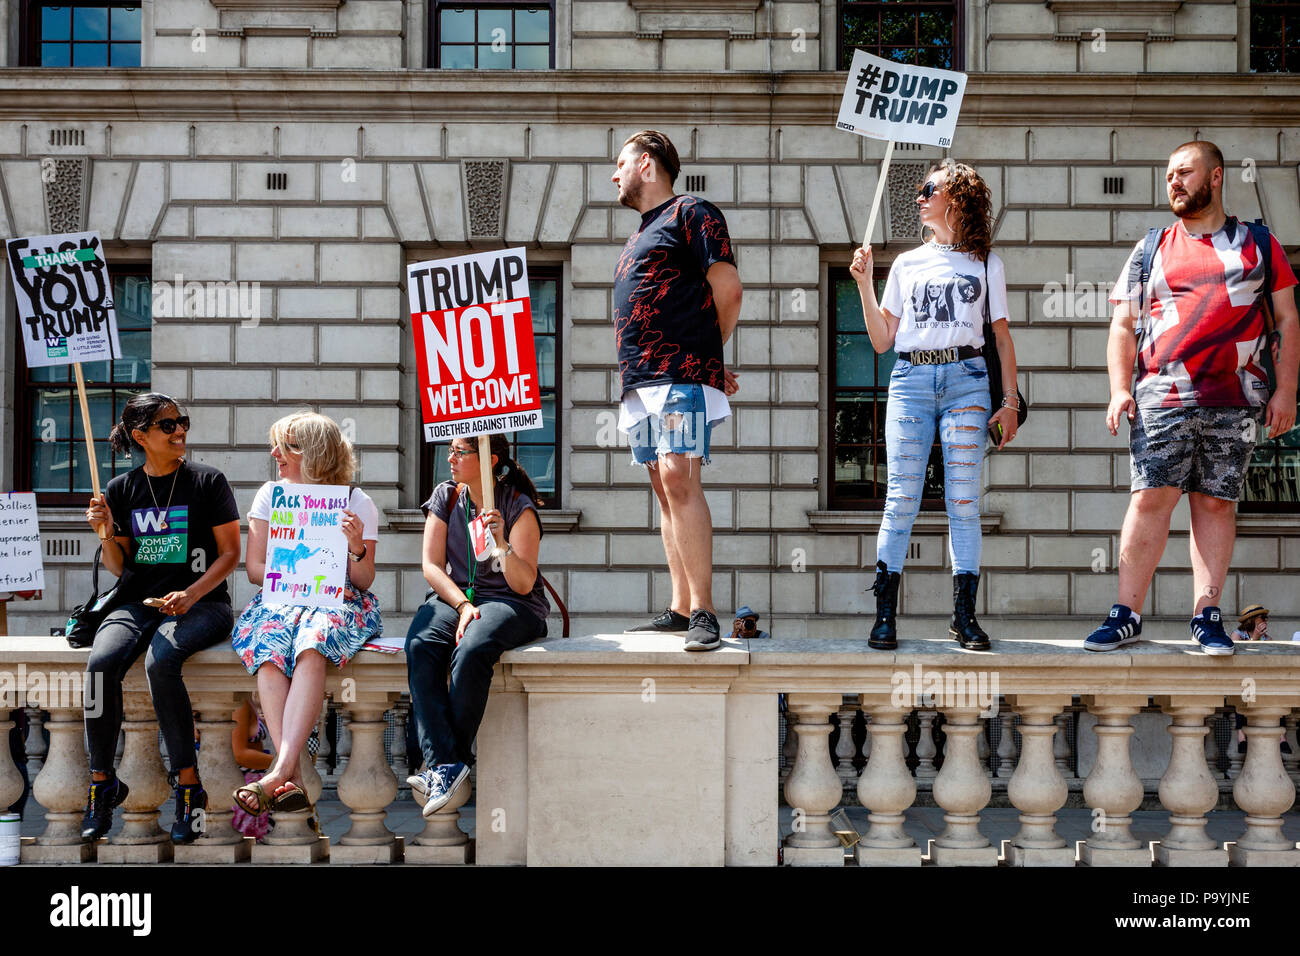 Anti Trump Protestors Protesting At The Visit To The UK of US President Donald Trump, Whitehall, London, England - Stock Image